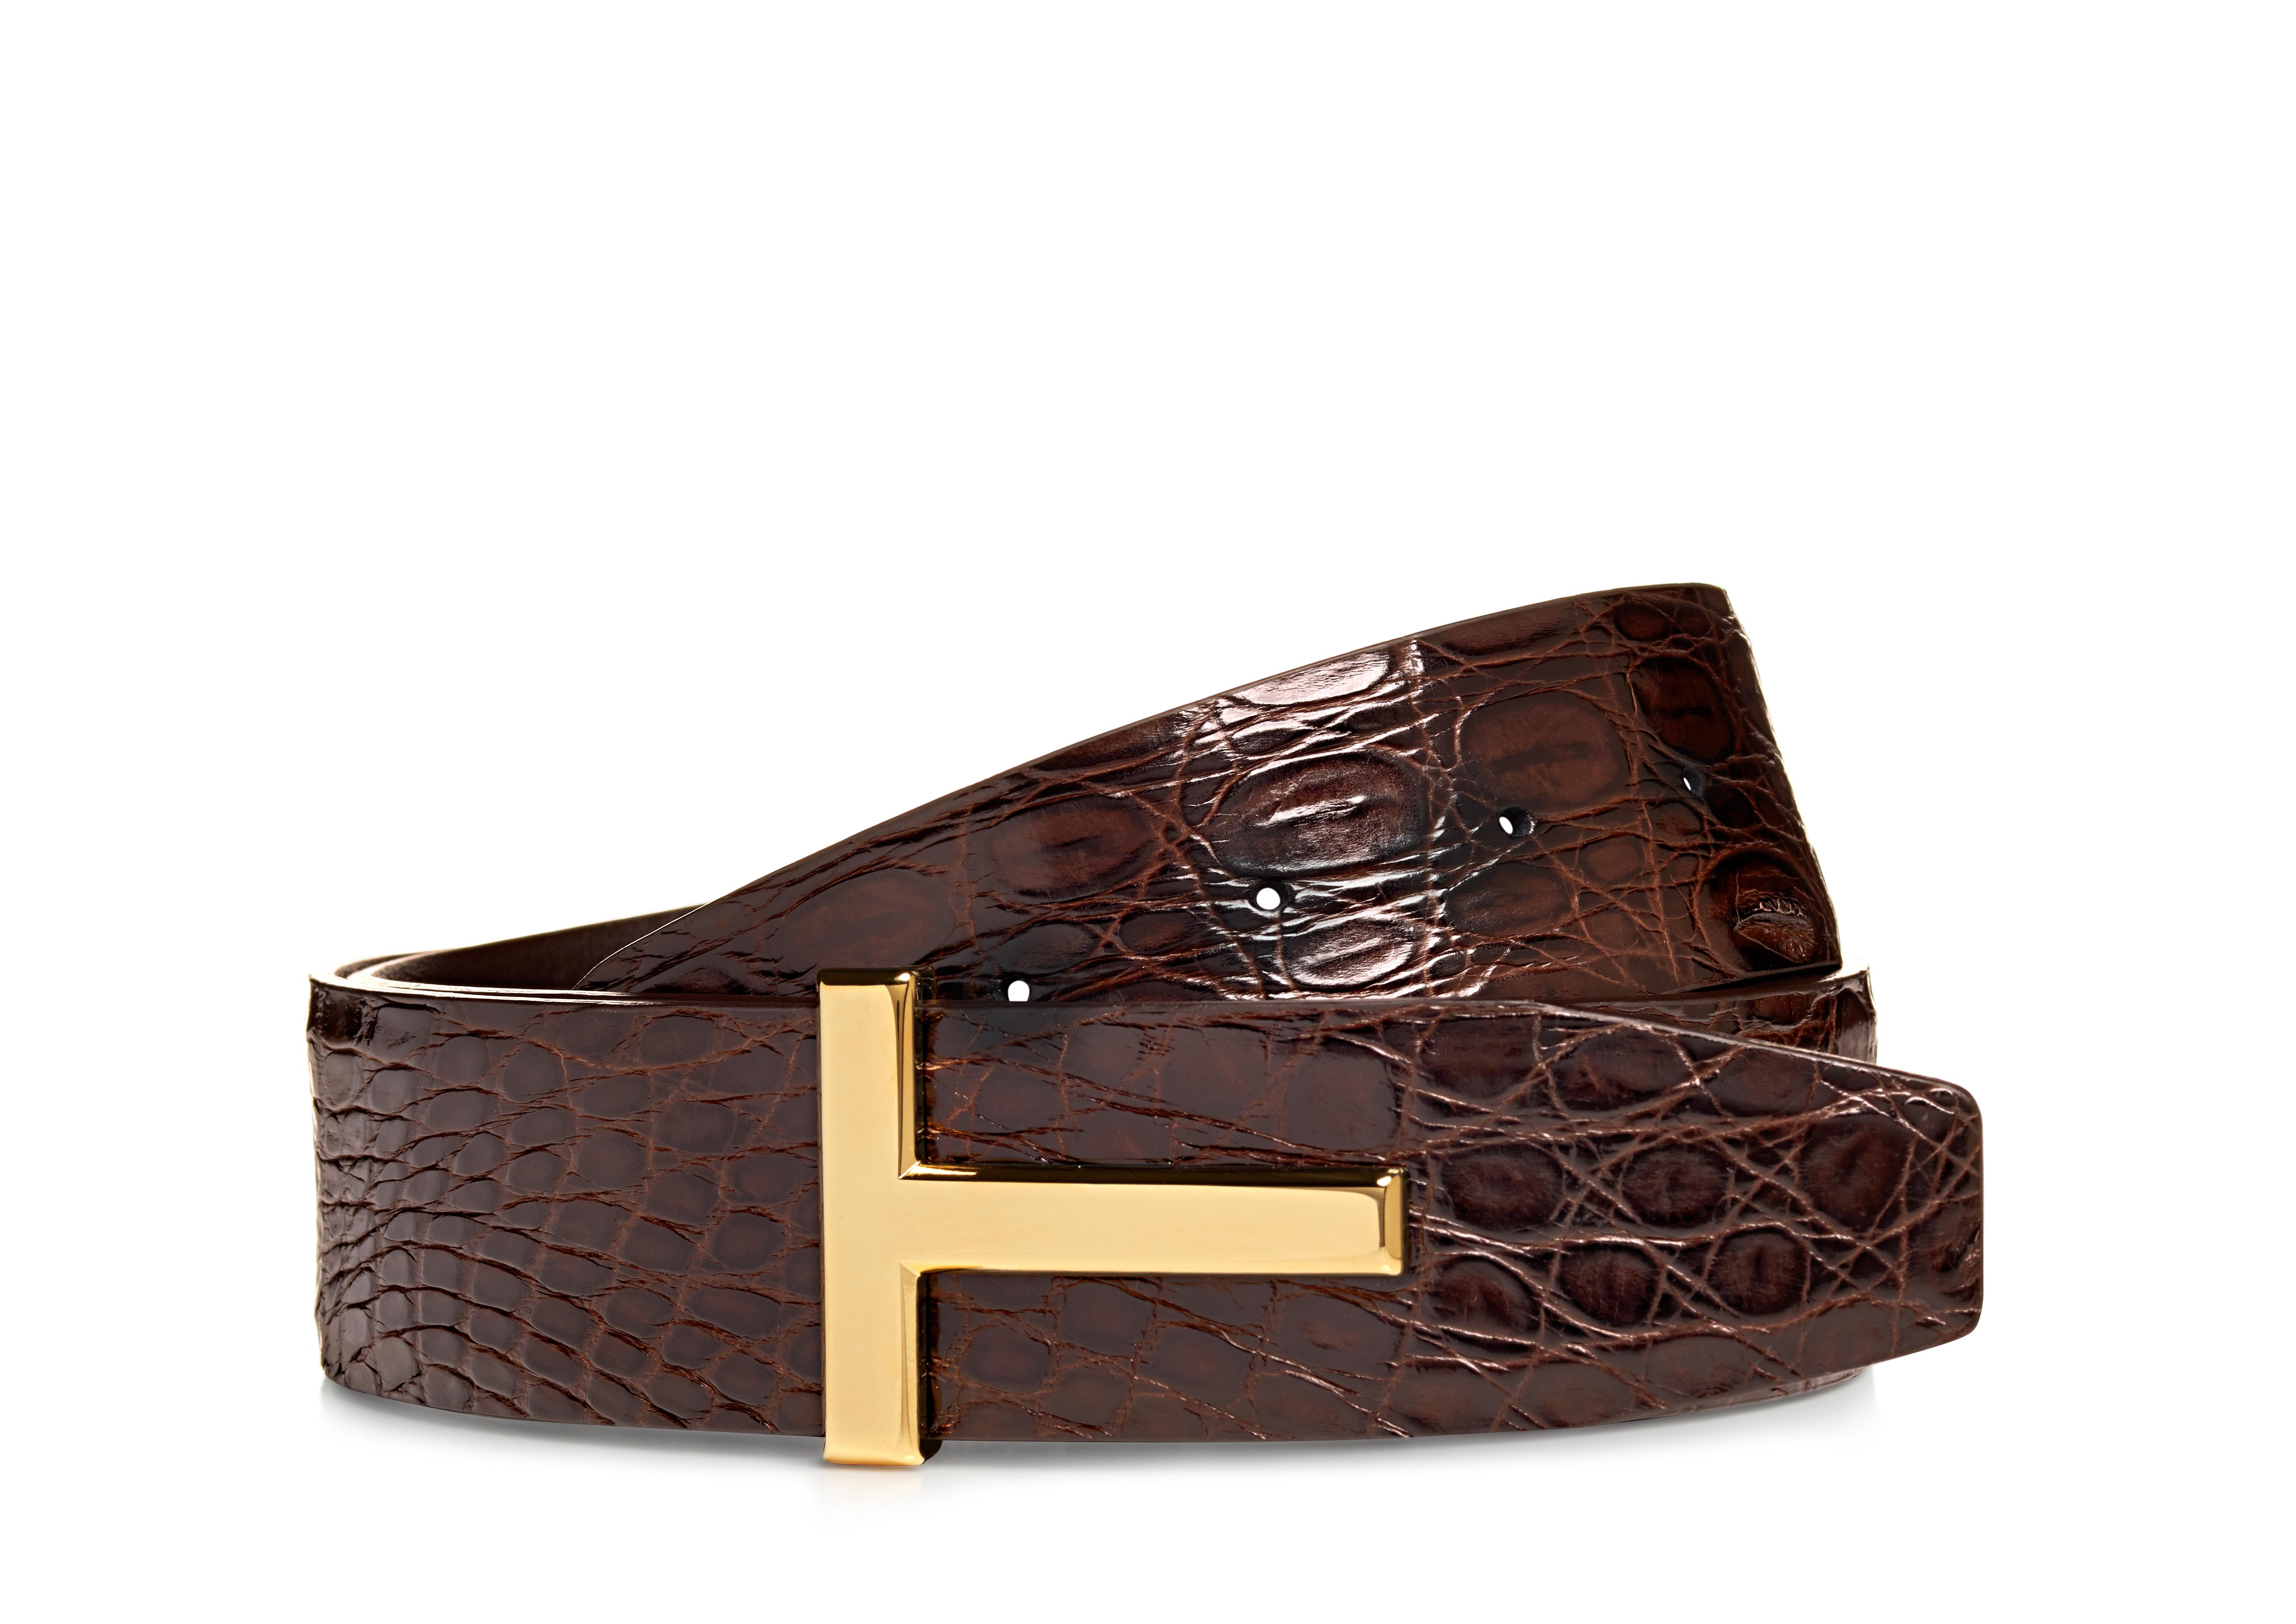 GOLD CROCODILE ICON BELT A thumbnail